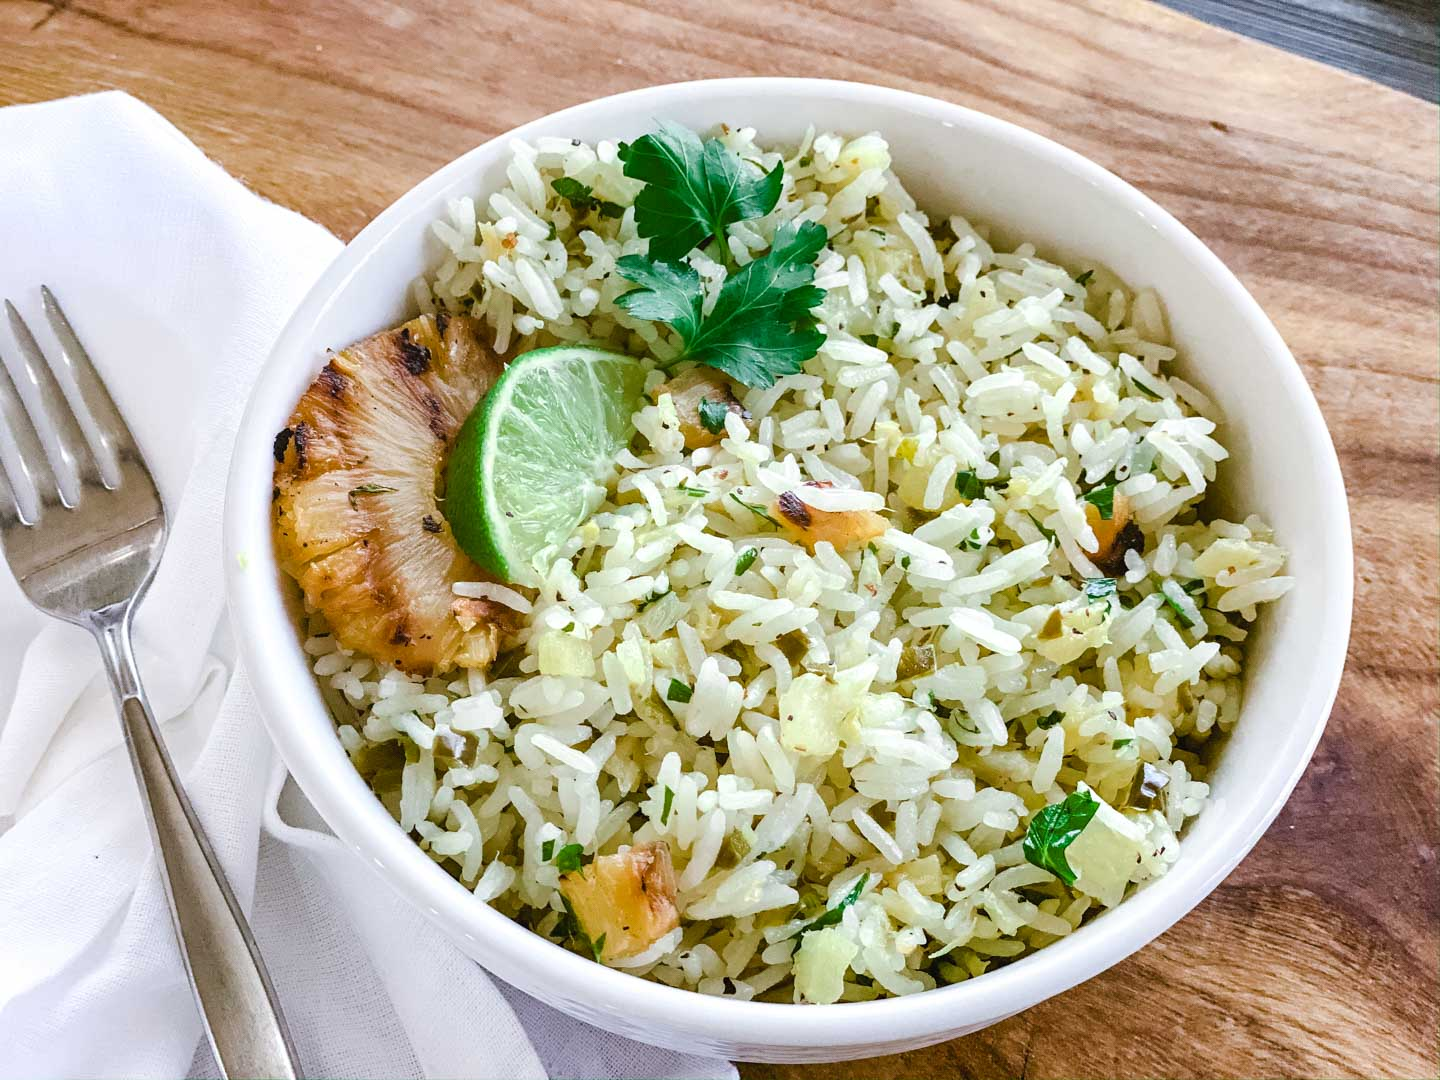 A bowl of pineapple jalapeno rice.